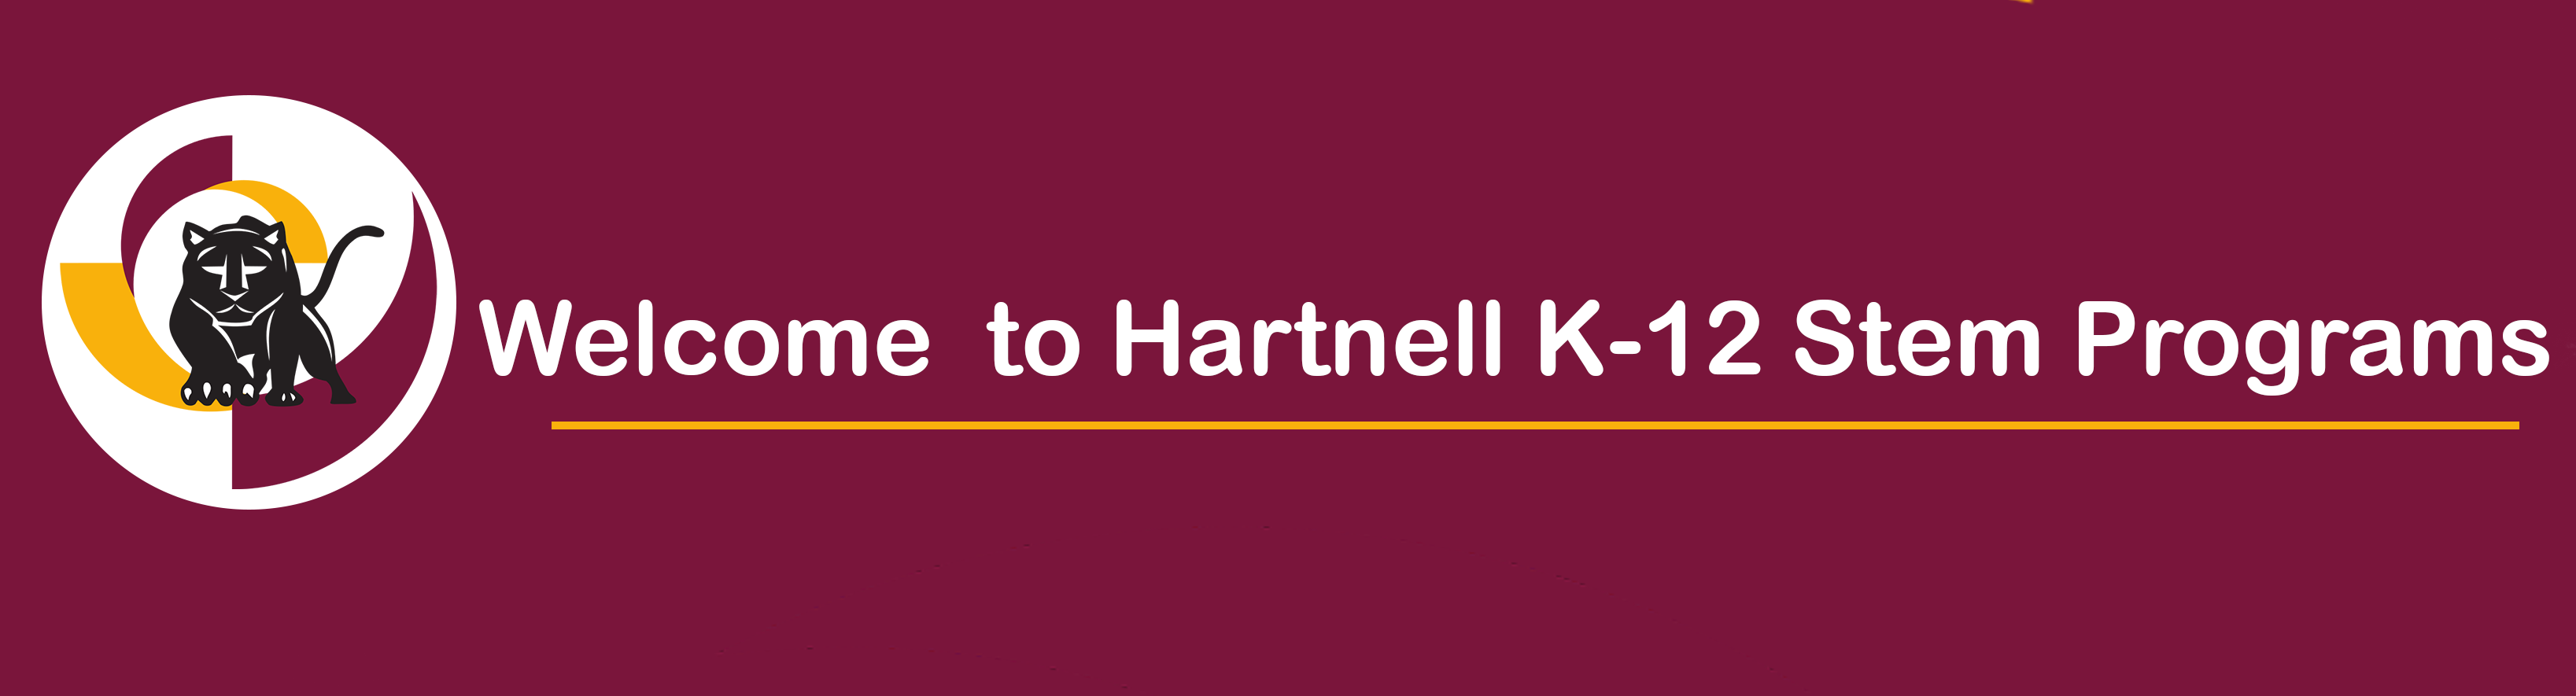 welcome to hartnell k12 stem programs image